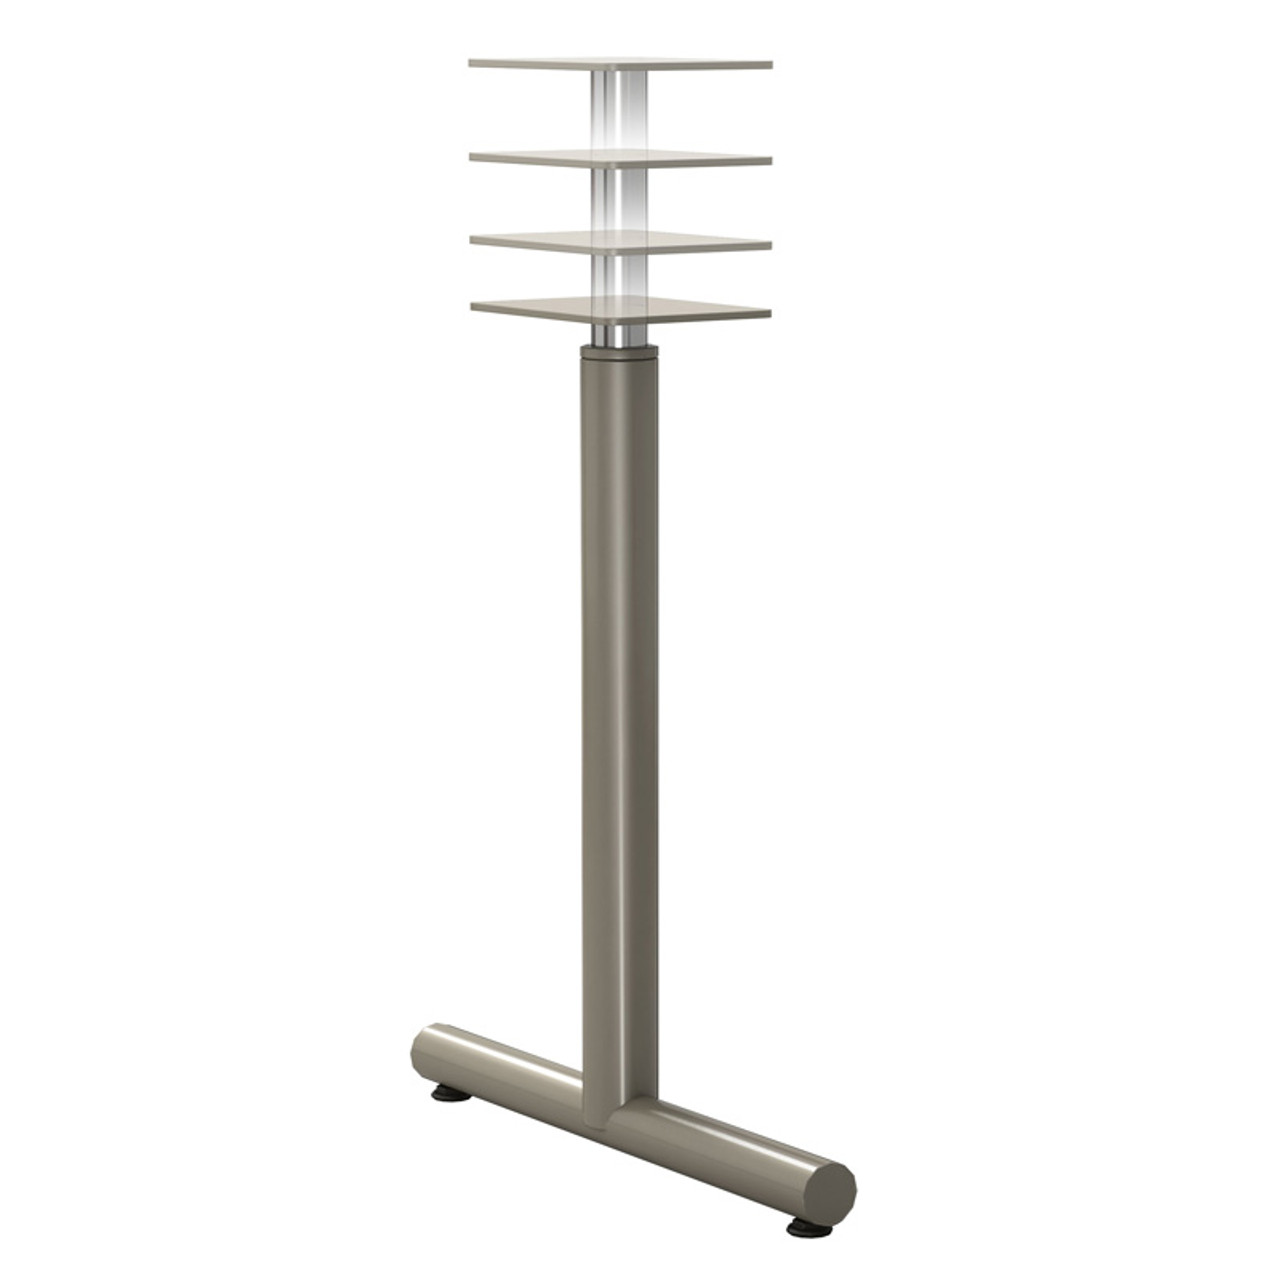 """Adjustable T-style Table Base, 24-3/4"""" to 32-3/4"""" Height Adjustment, Welded Construction, 2-3/8"""" Diameter Column with Adjustable Levelers, Single - Replacementtablelegs.com"""